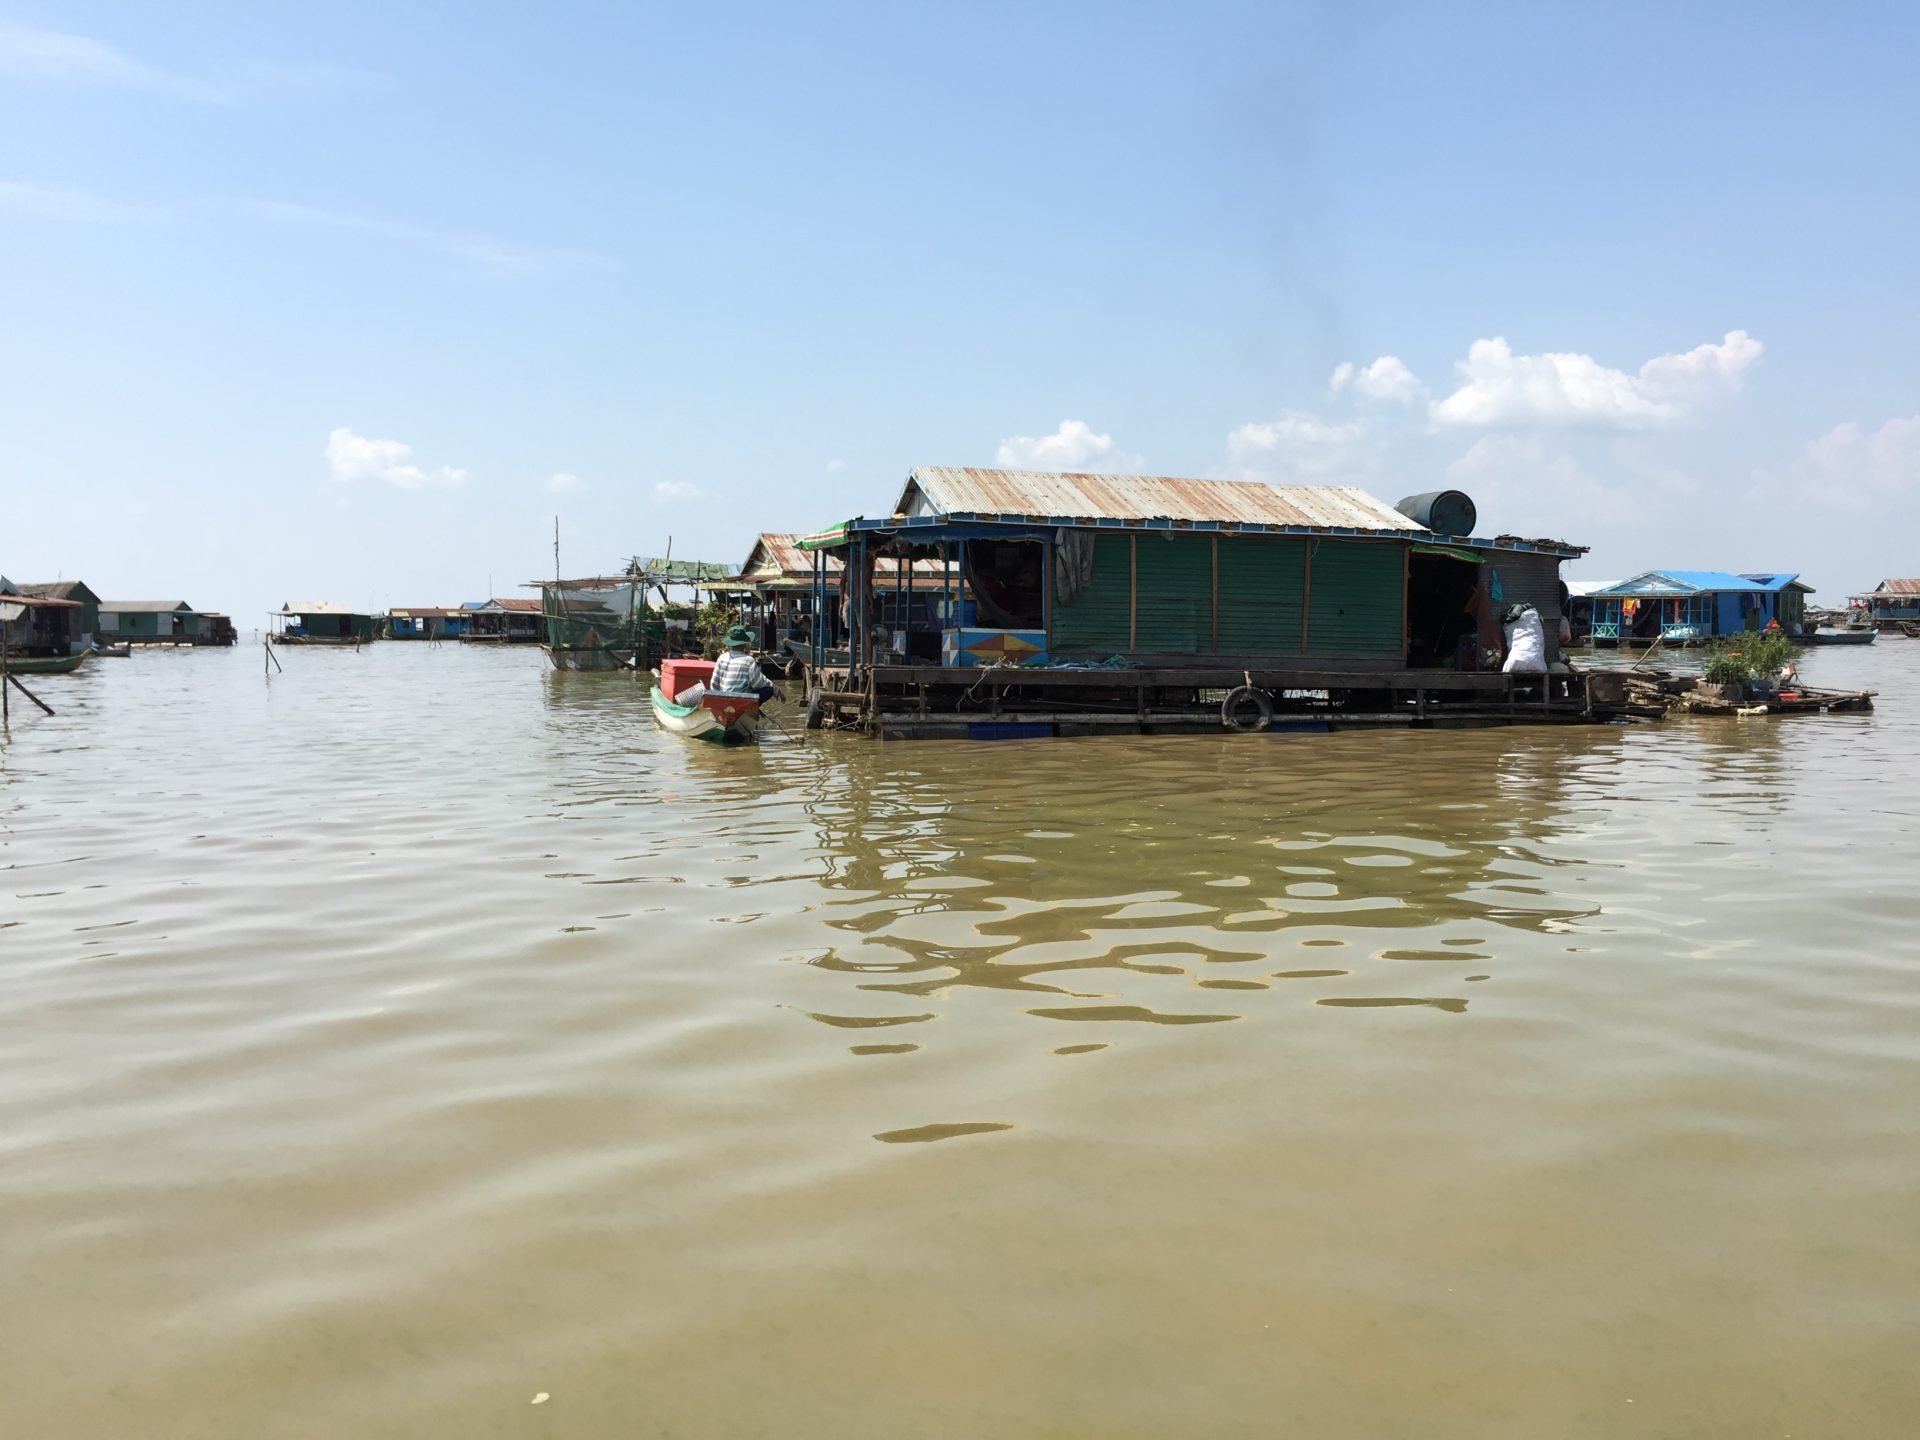 the village of Vietnamese living in the Great Lake, Siem Reap